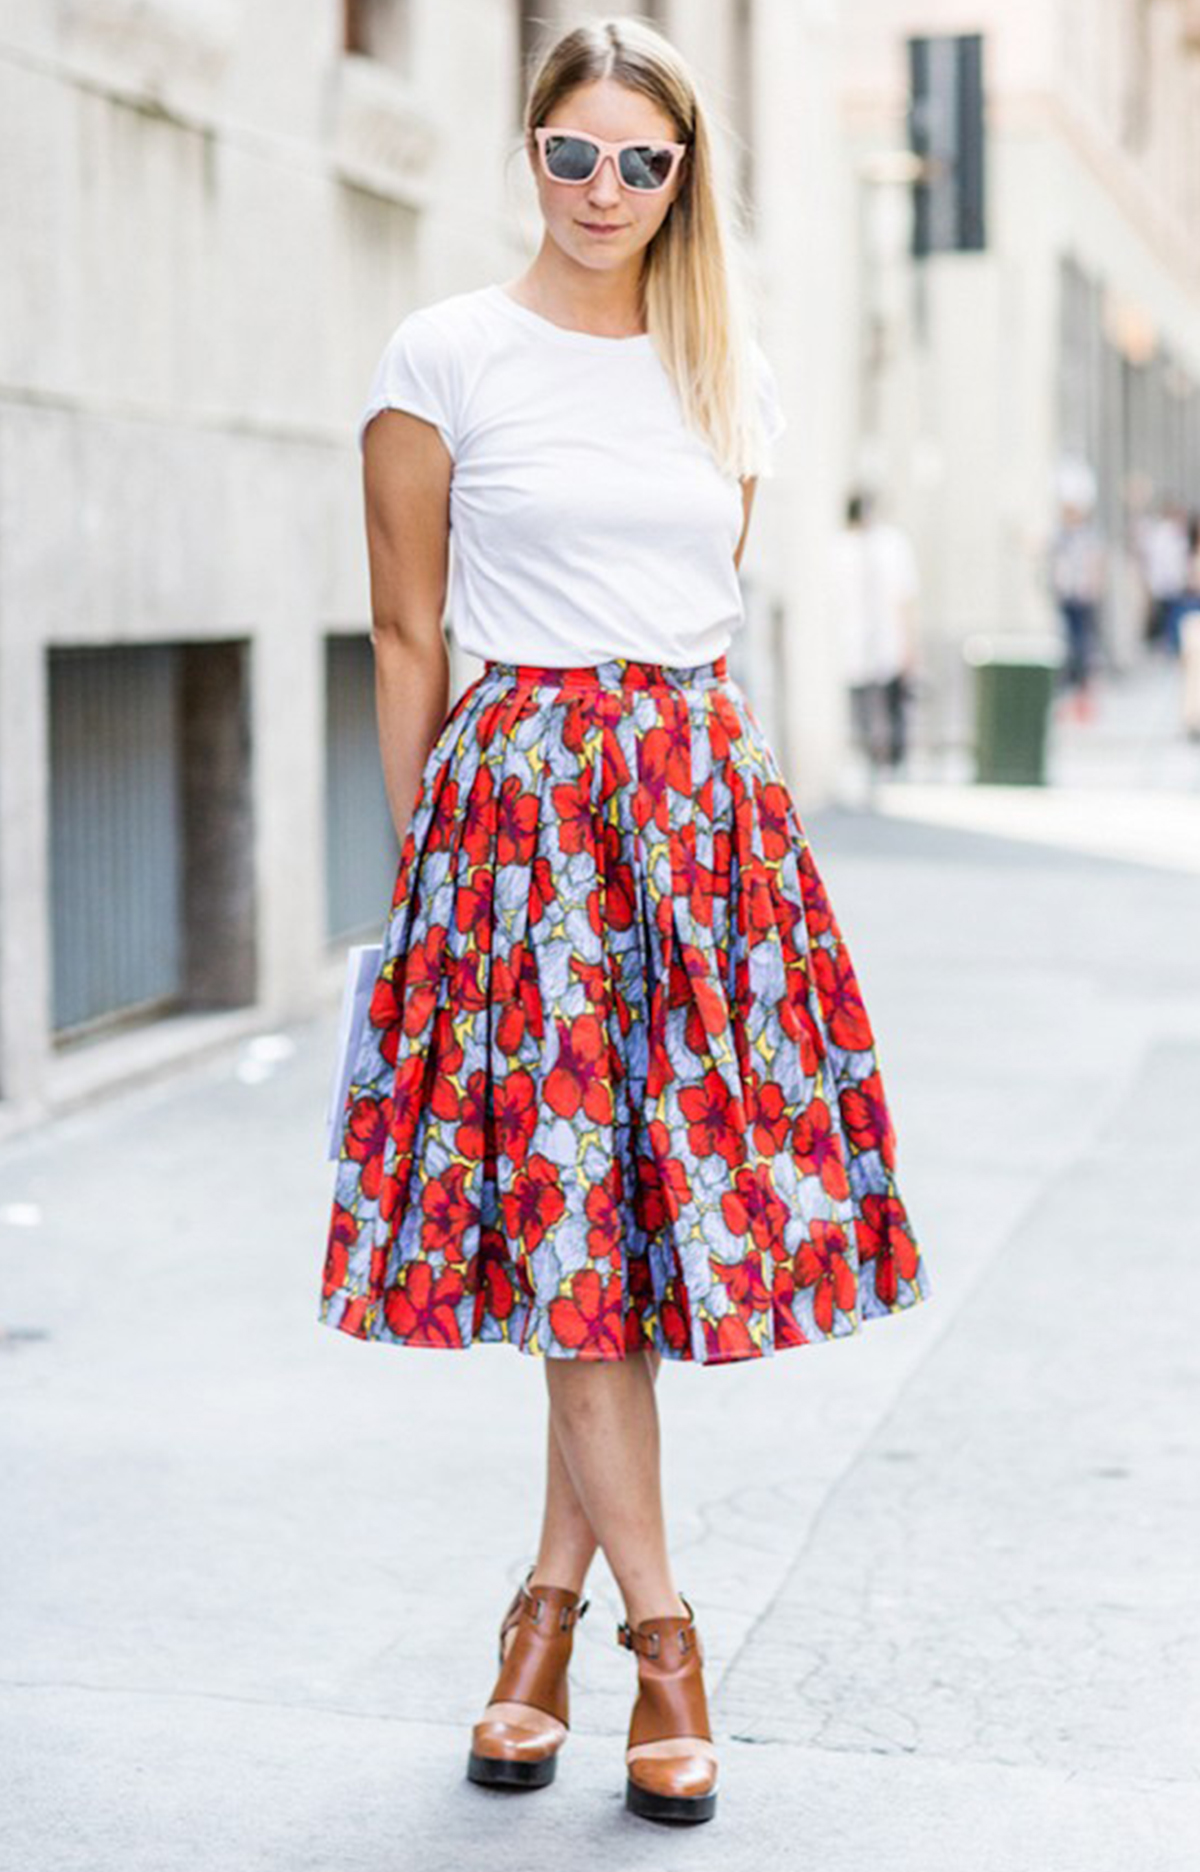 White t shirt and skirt_Ways to wear white